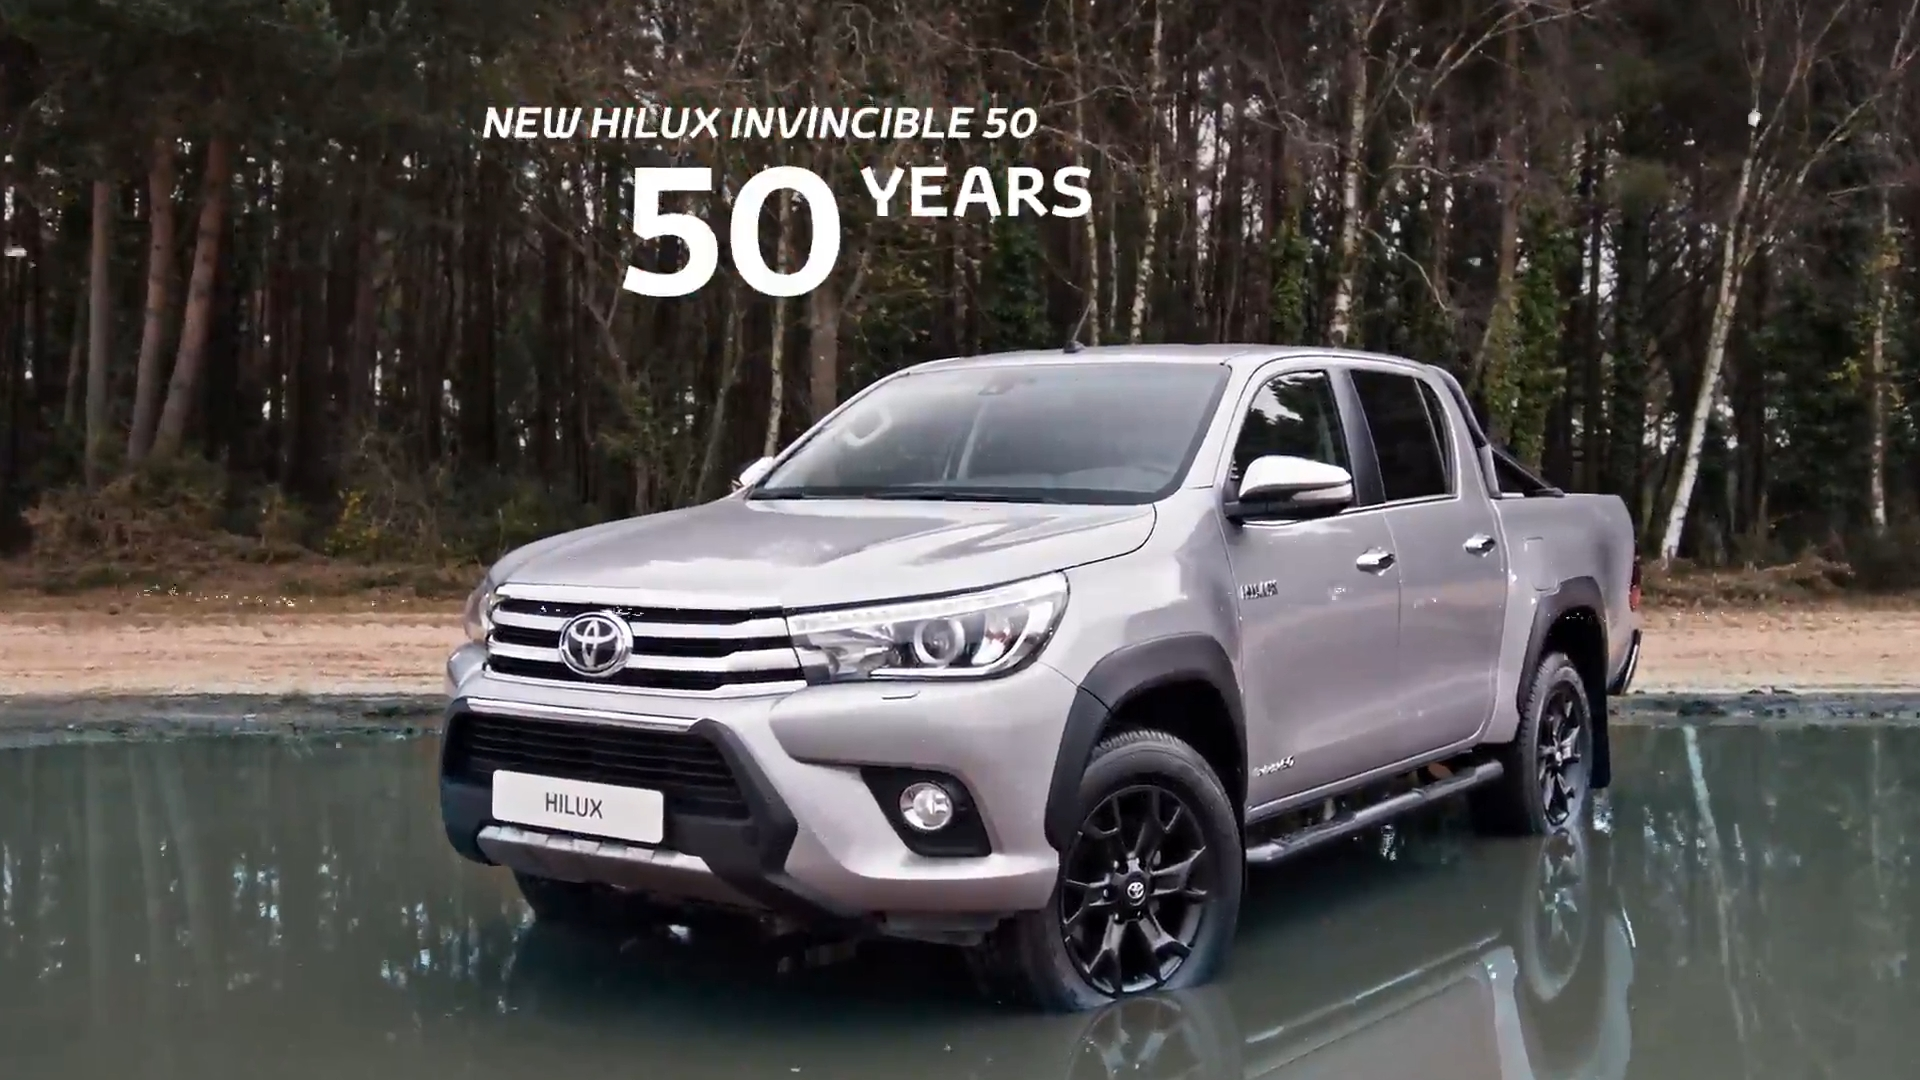 50th Anniversary of Toyota Hilux Invincible 50 Black Edition